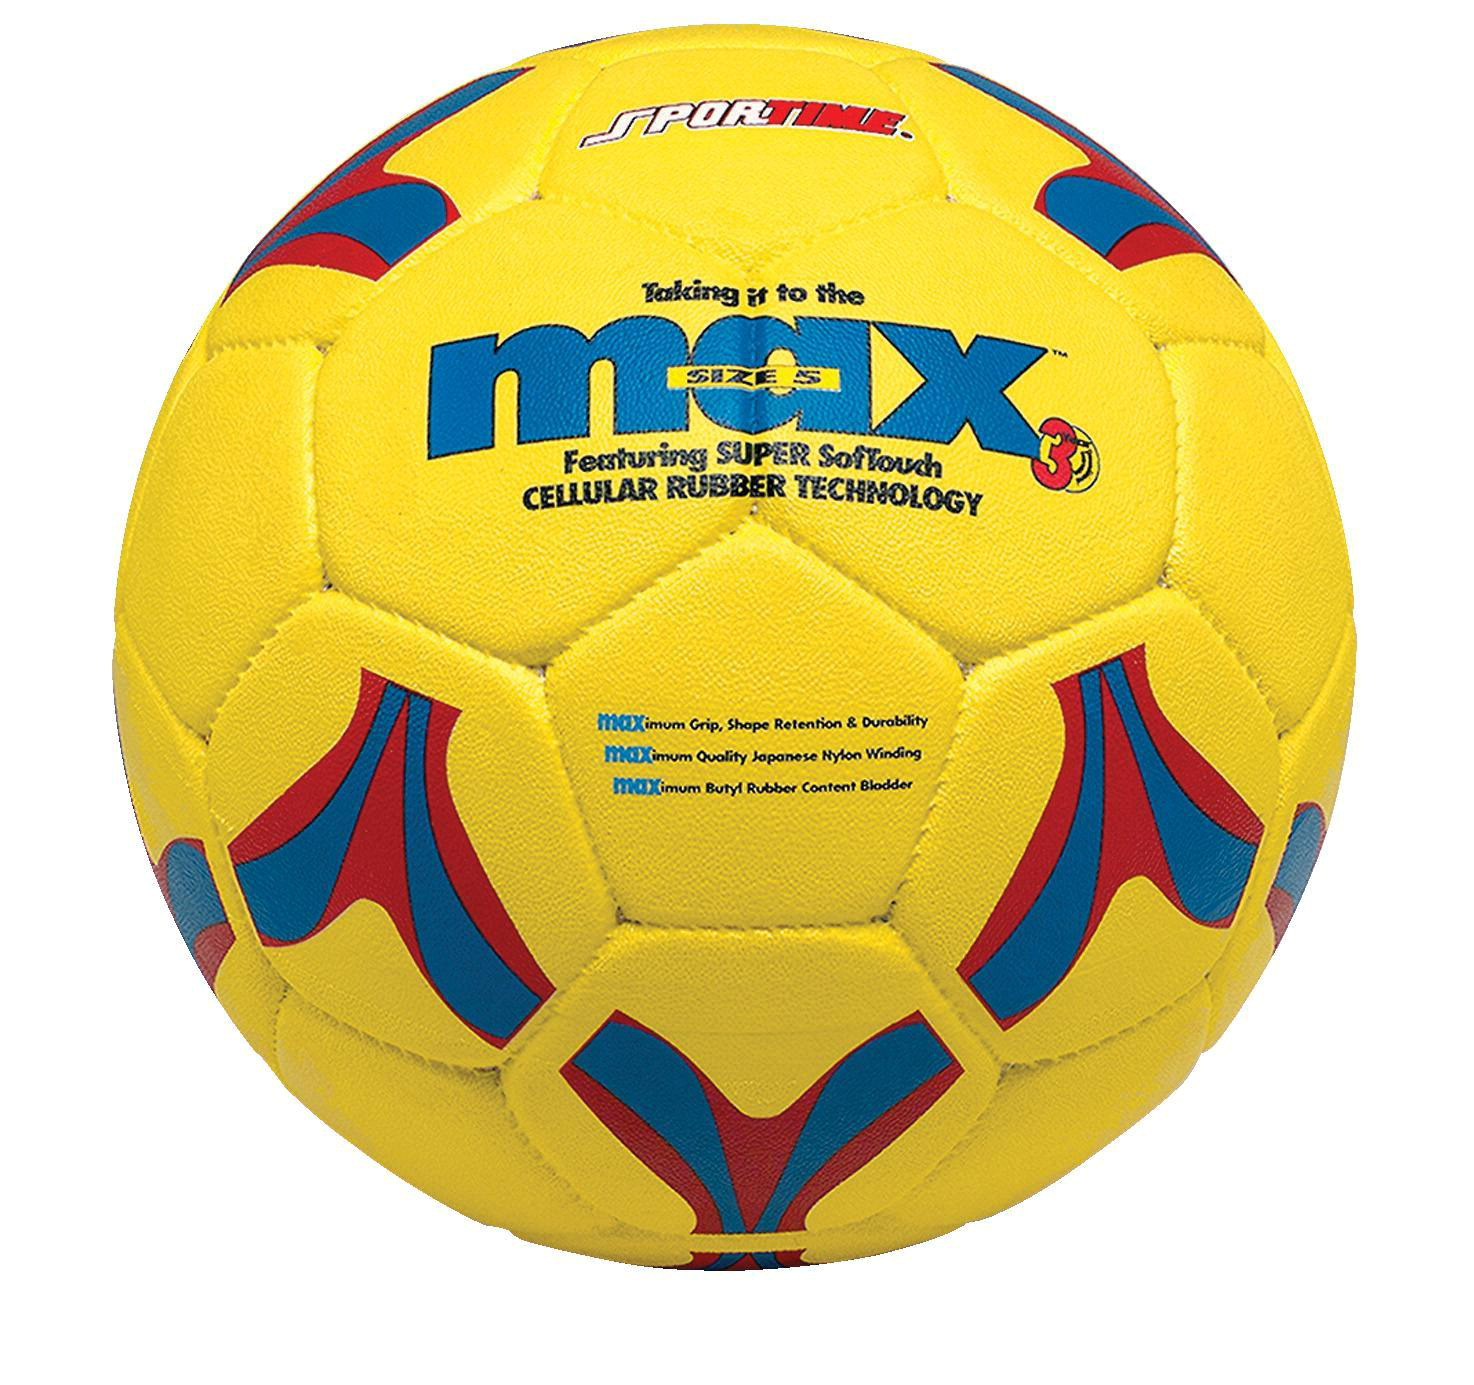 SportimeMax No 4 ProRubber Soccer Ball, Yellow with Red-and-Blue Linear Design